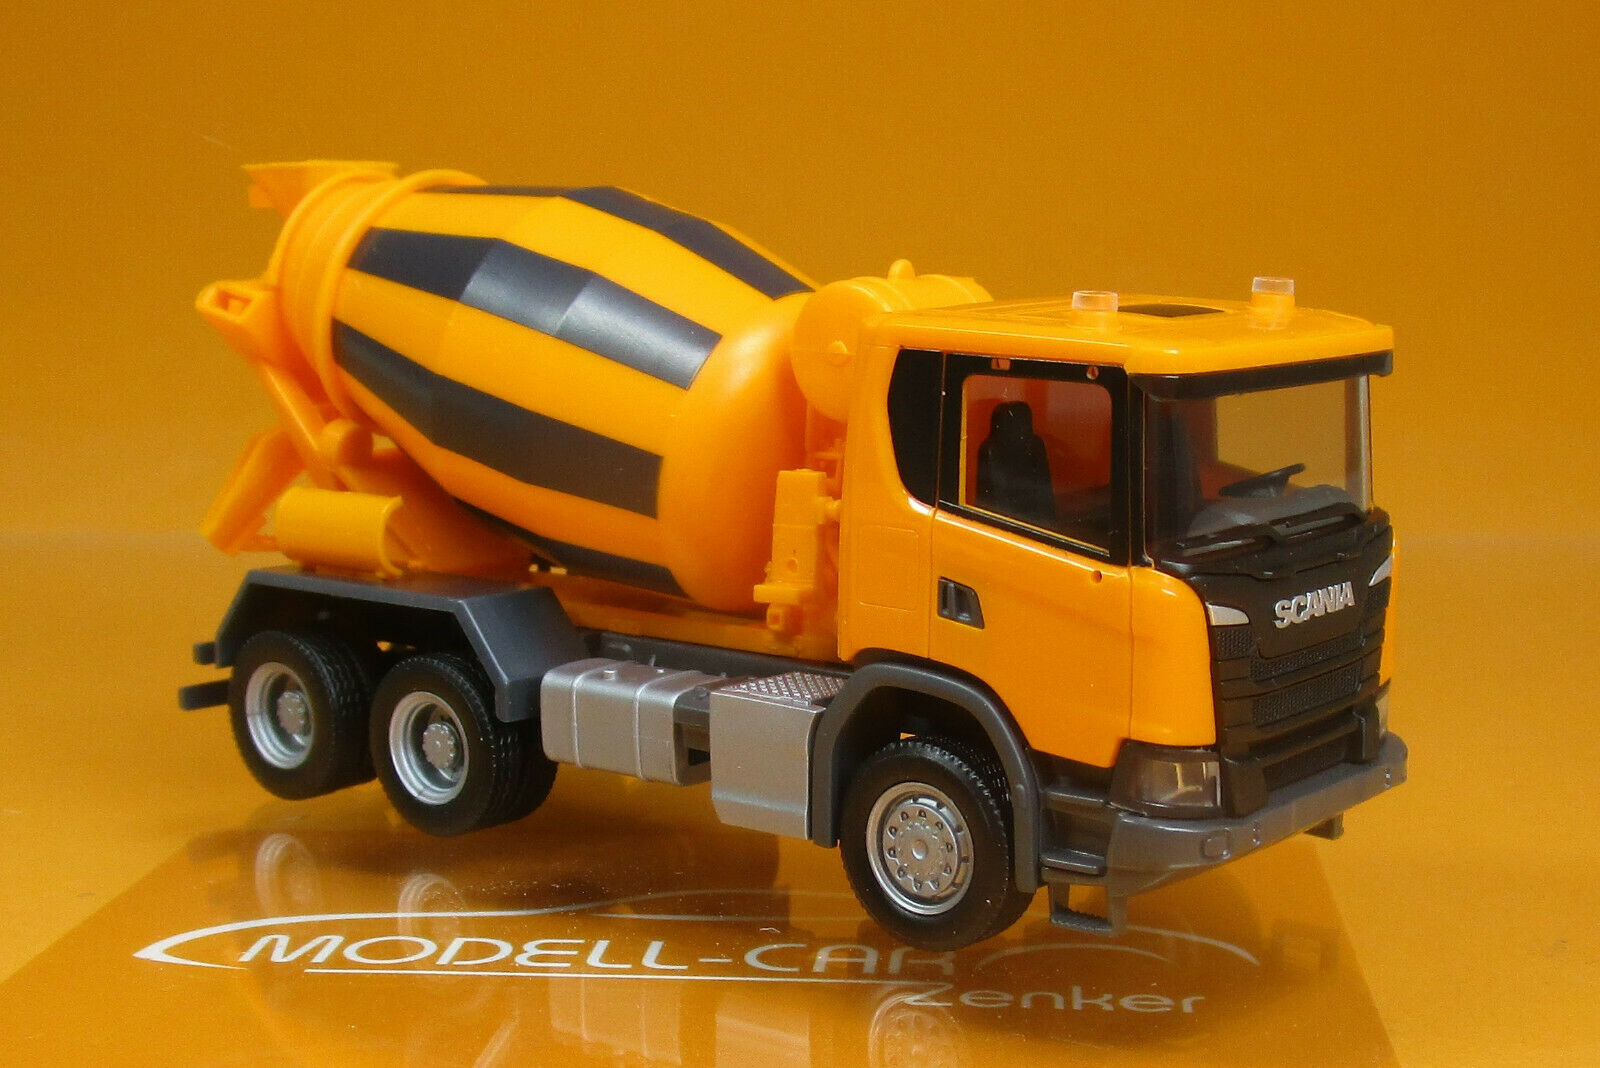 Herpa 309783 Scania CG 17 6x6 Betonmischer orange Scale 1 87